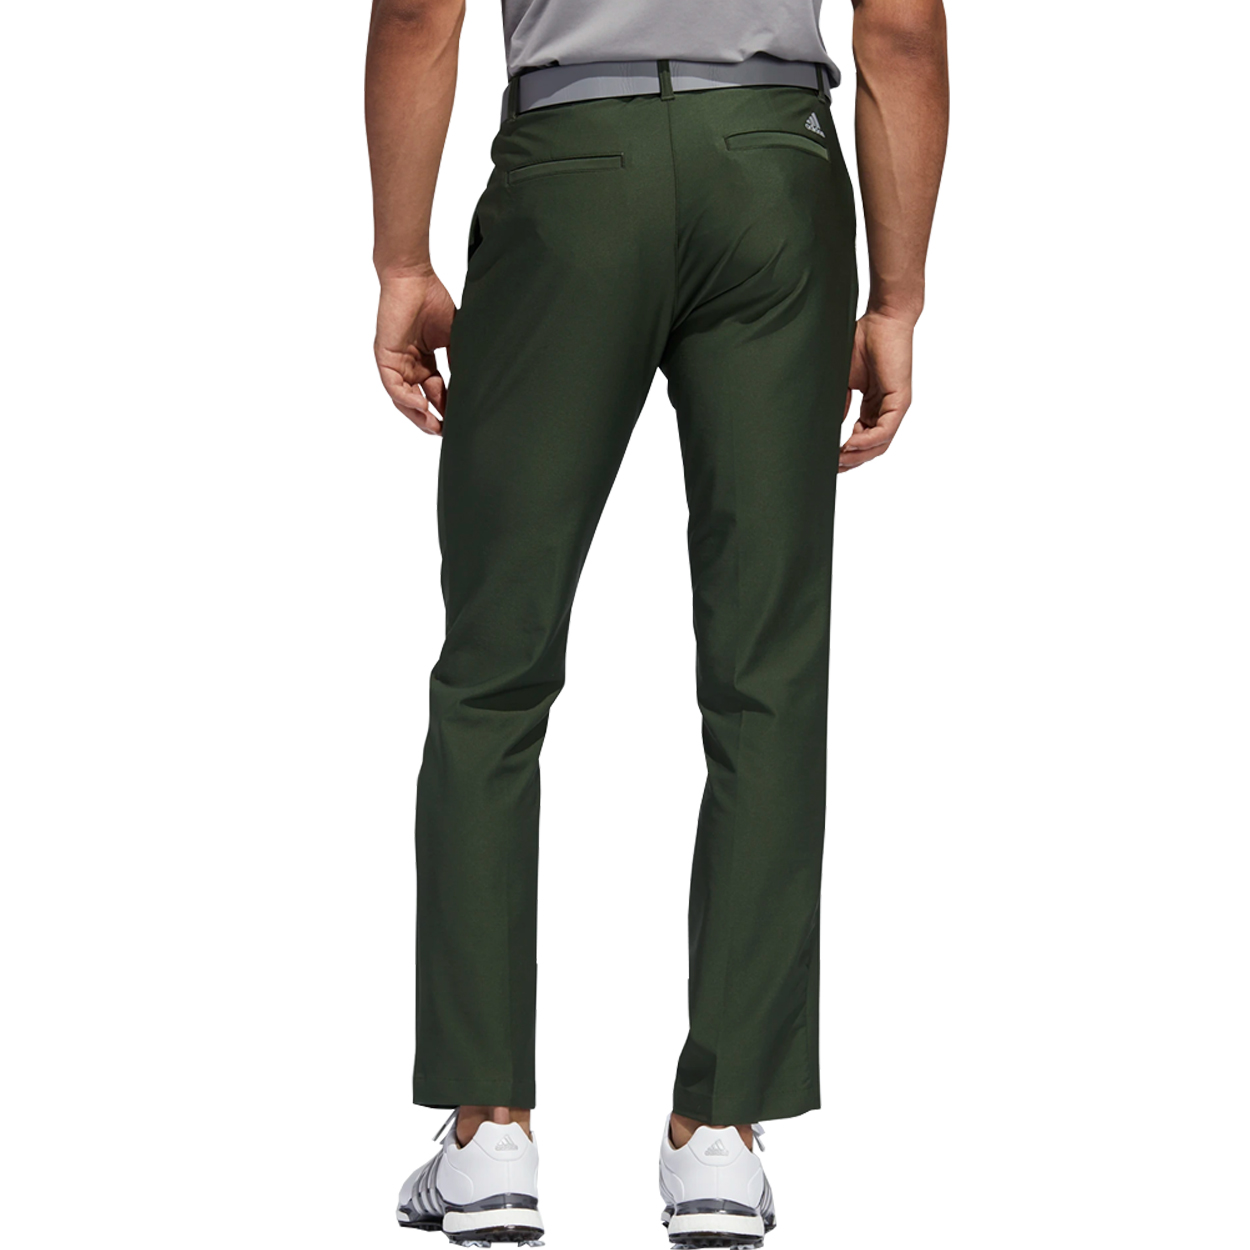 Adidas-Golf-Men-039-s-Ultimate-365-Classic-Pants-Brand-New thumbnail 6